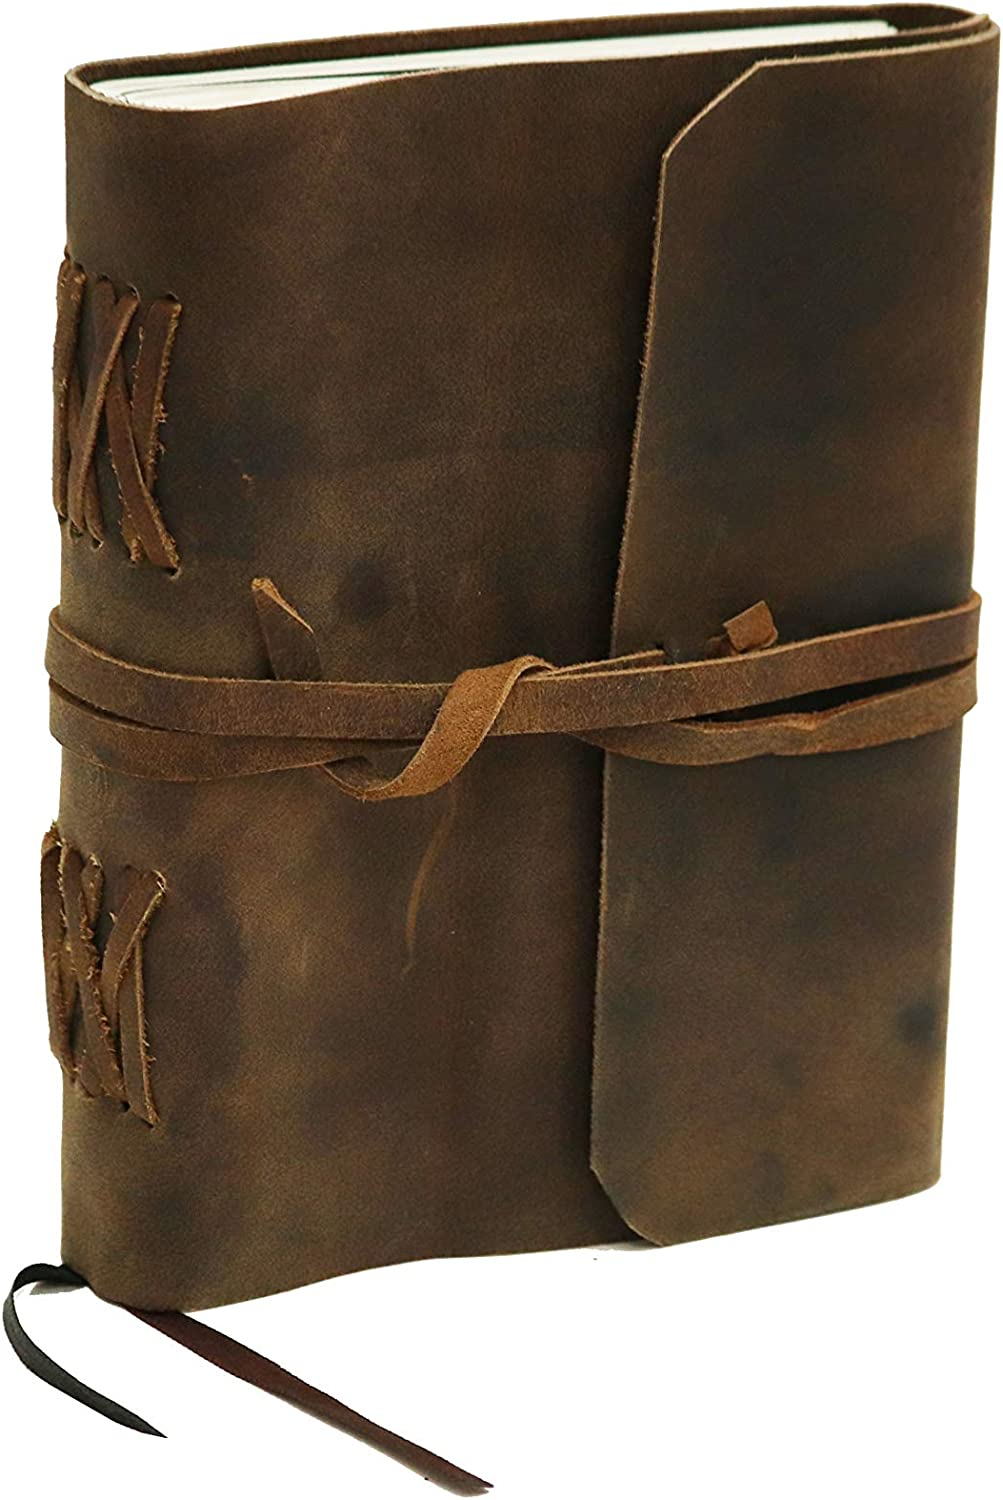 Leather Journal Lined Book For Men & Women, Leather Bound Notebook, Travel Journal, Writing Memories Journal Diary